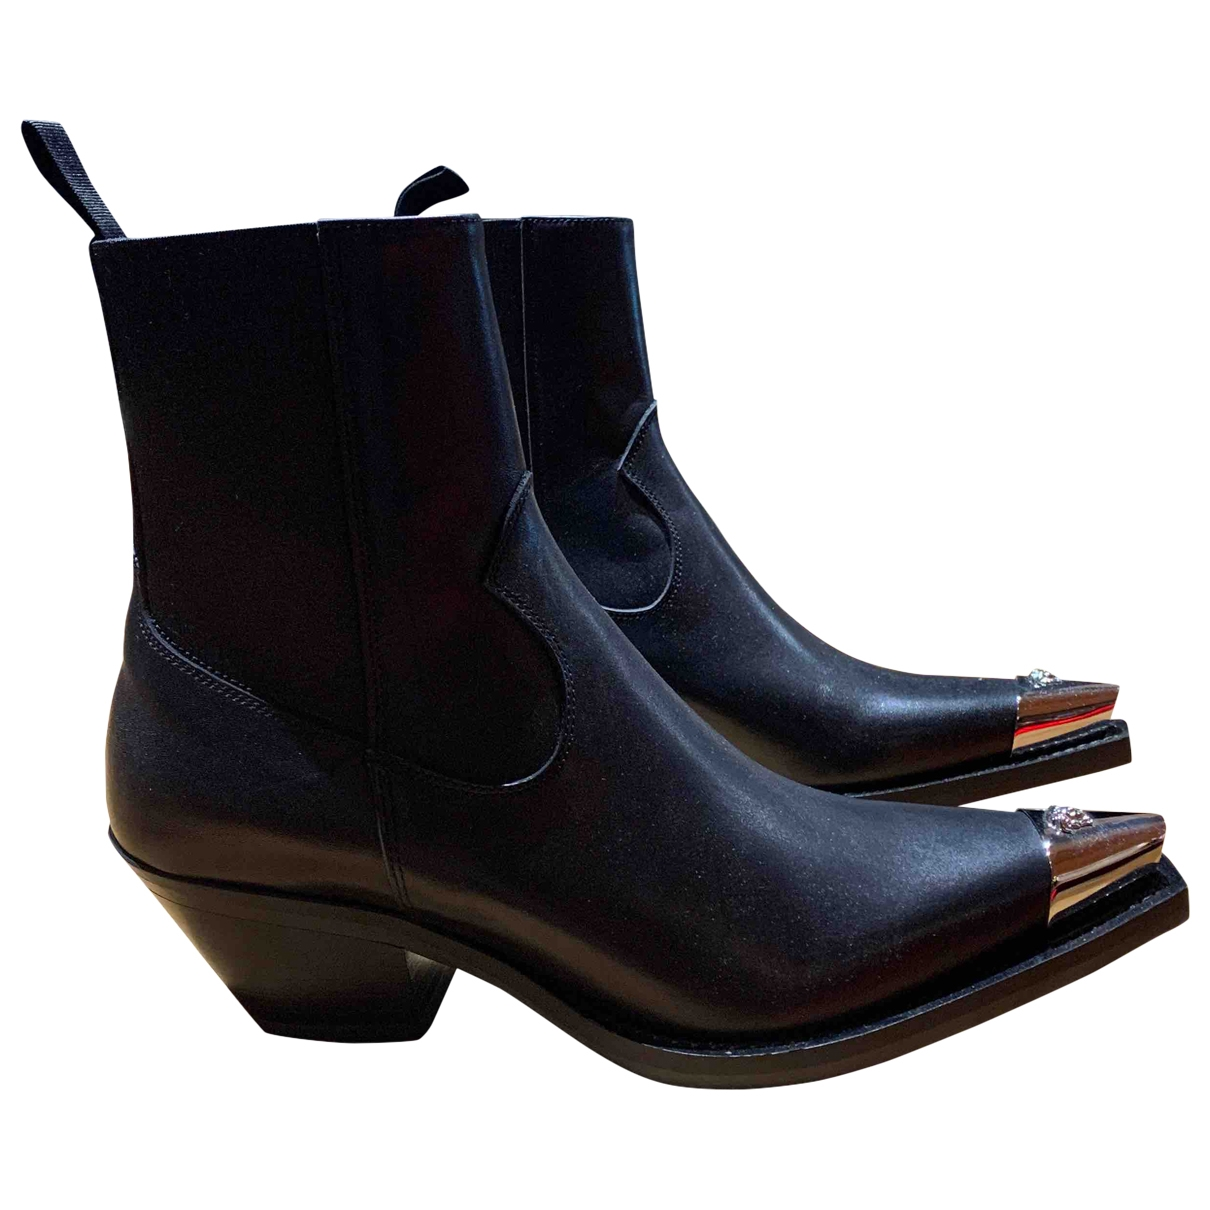 Versace \N Black Leather Ankle boots for Women 38.5 EU